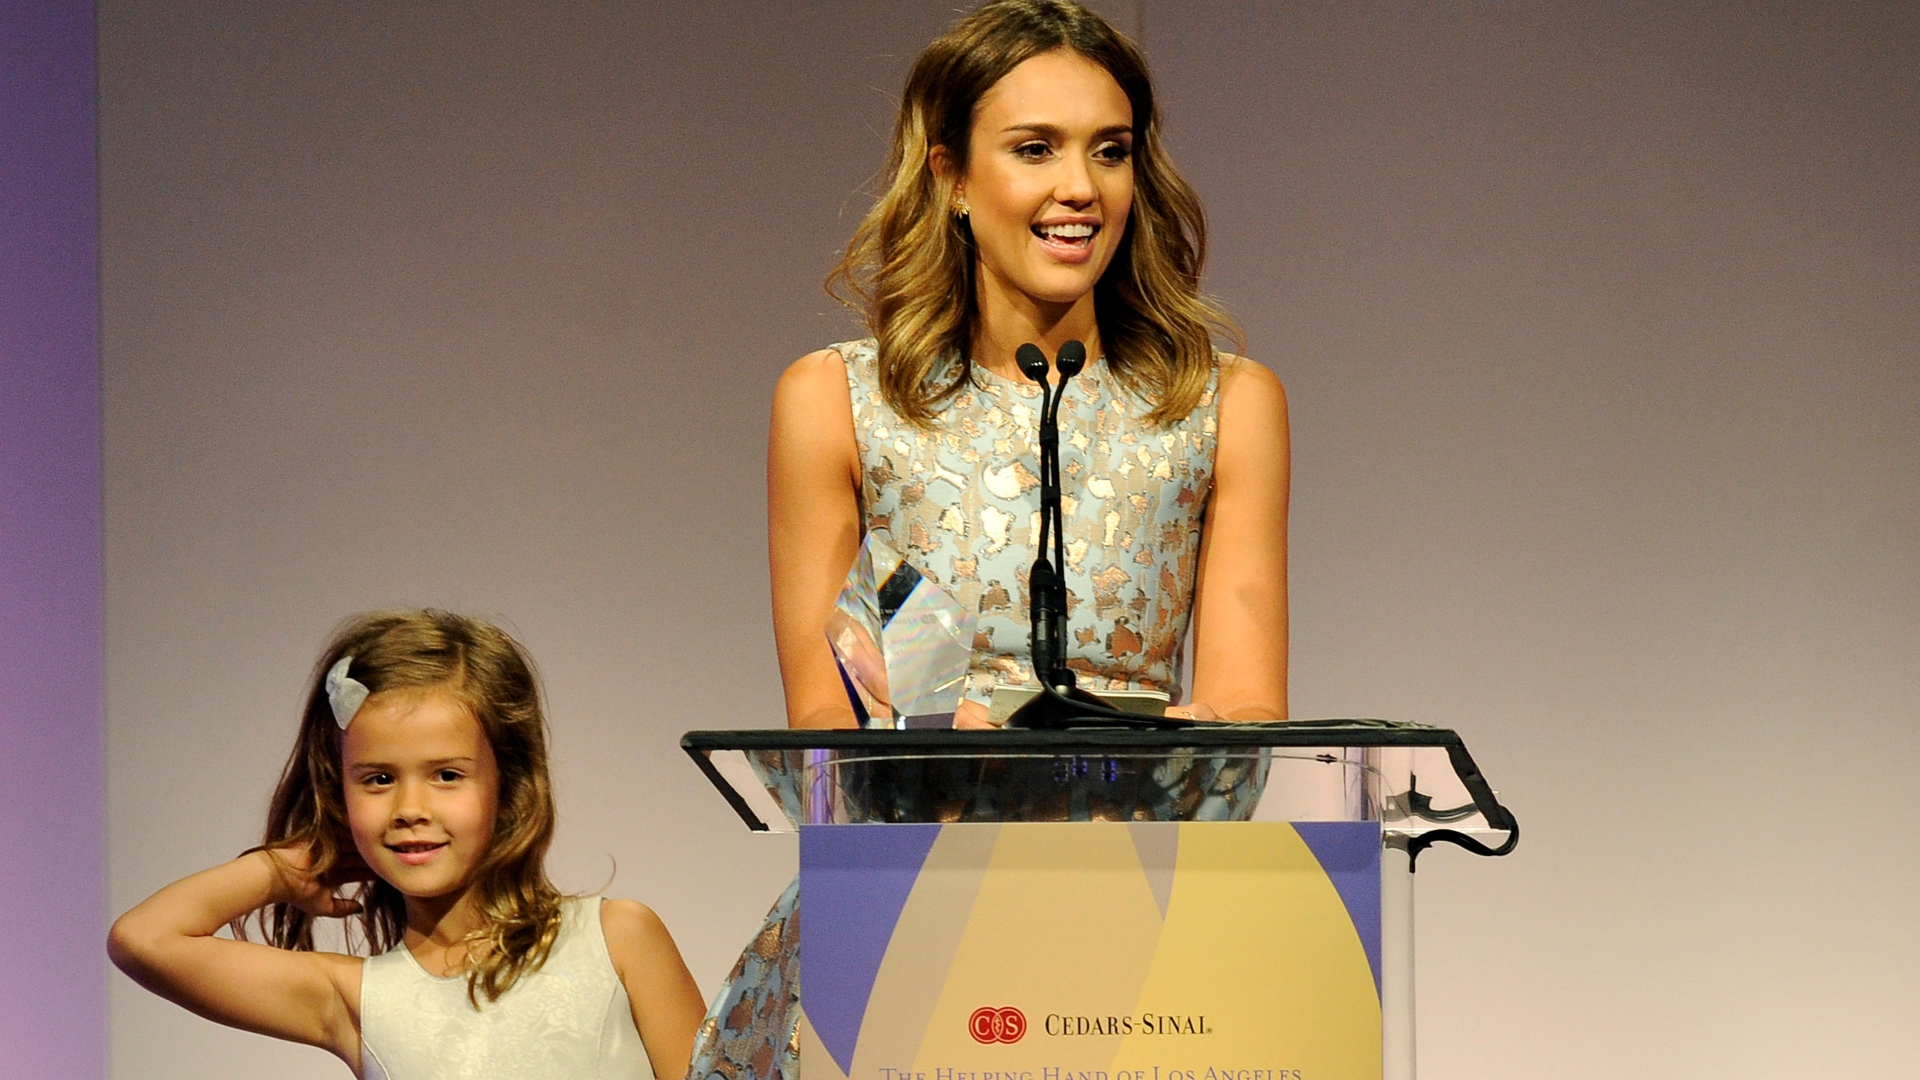 Jessica Alba S Daughter Honor What To Know About The 12 Year Old Sheknows